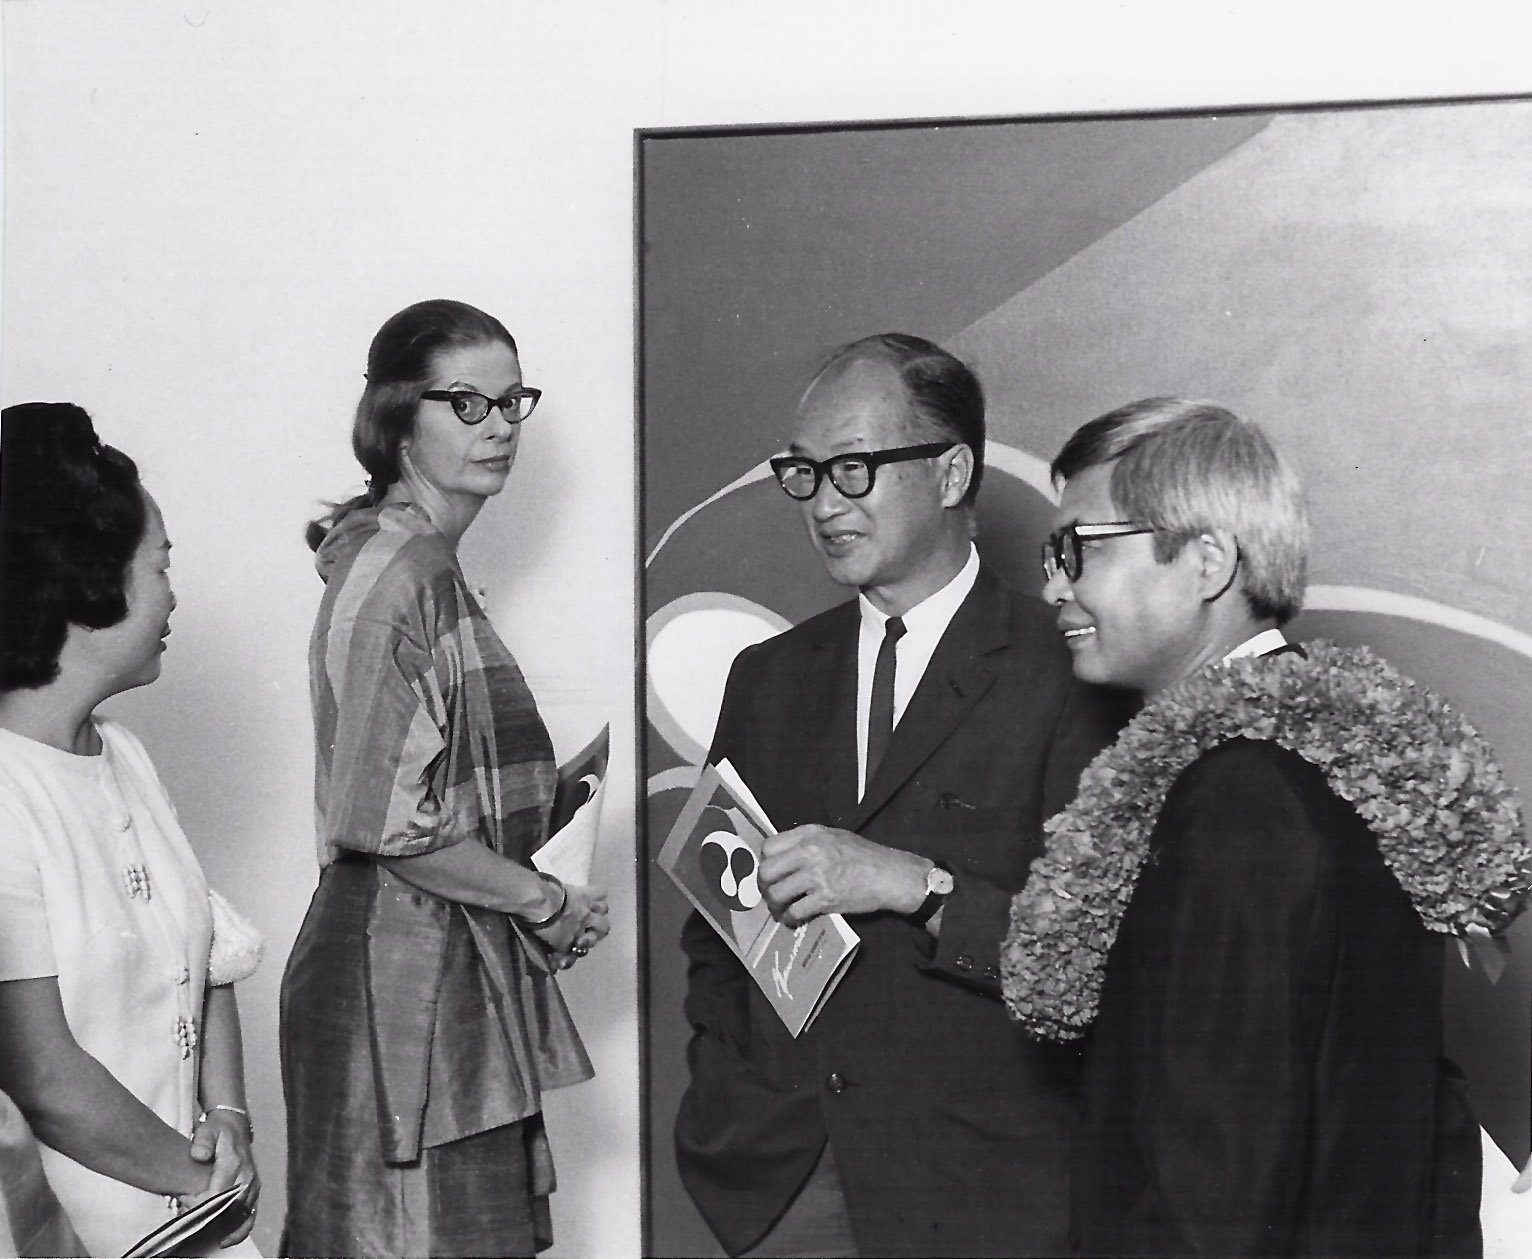 Exhibition of works by Kanemitsu at the Honolulu Academy of Arts, 1967.